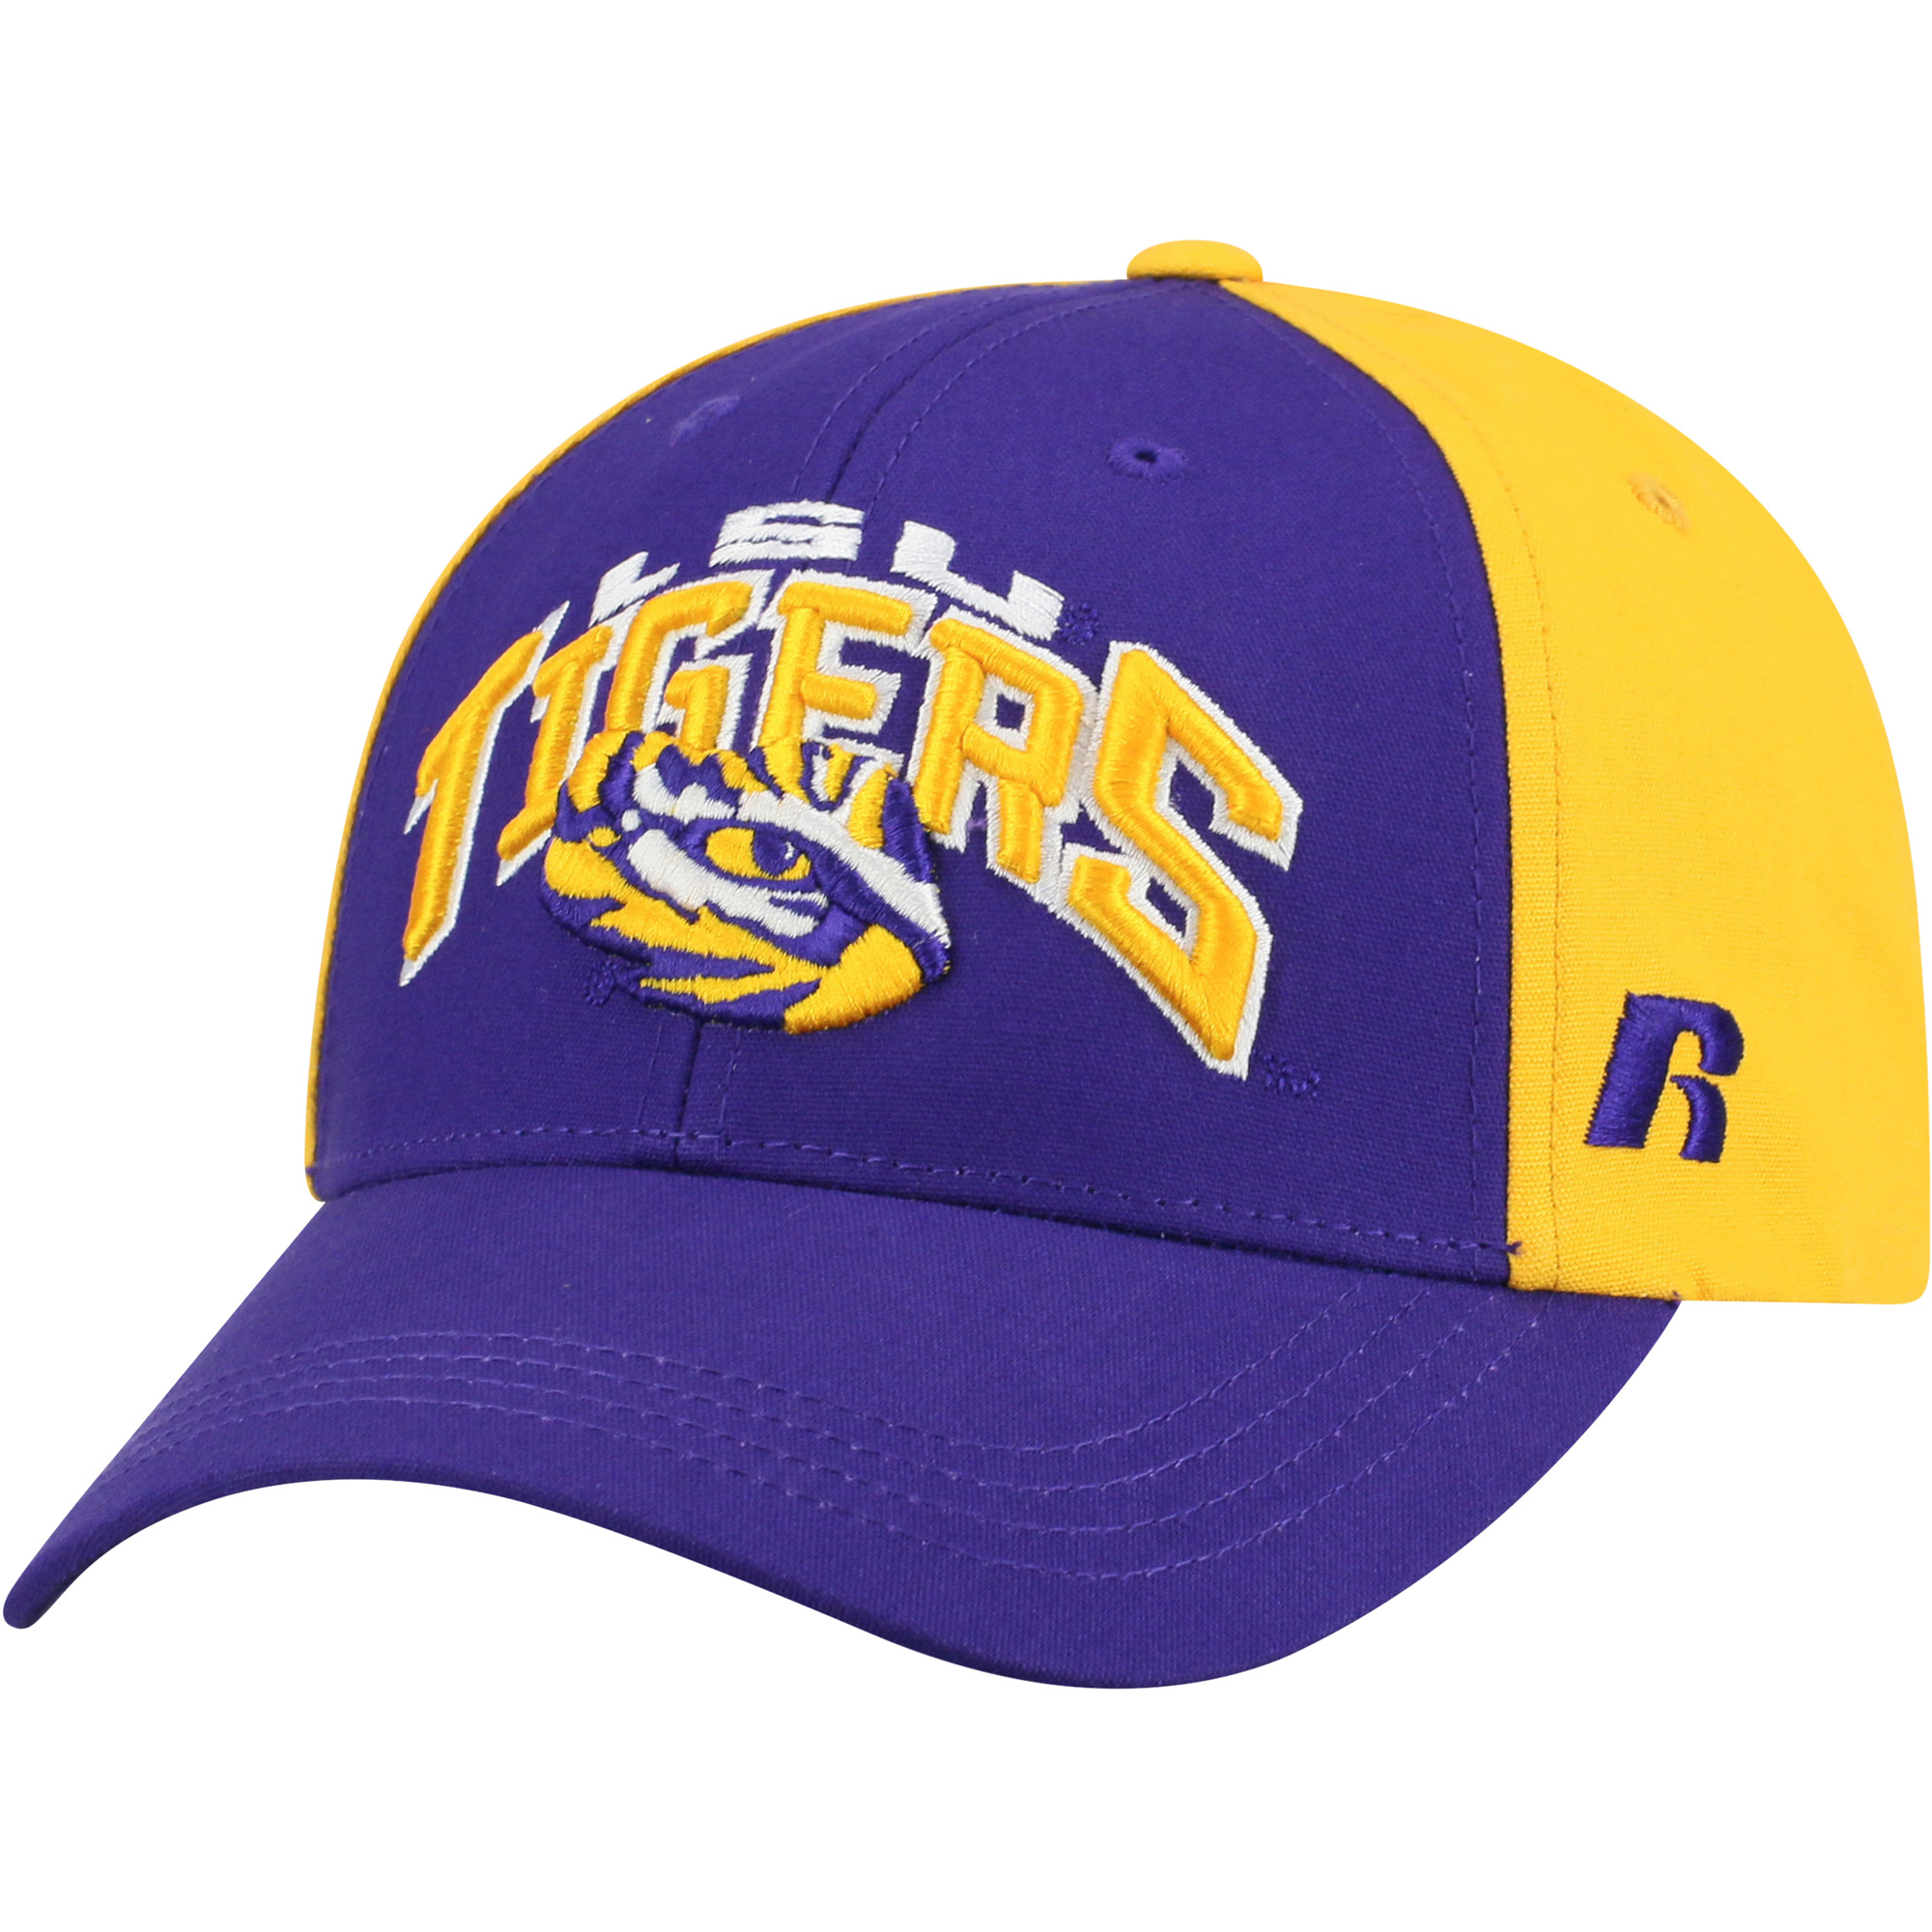 Men's Russell Purple/Gold LSU Tigers Tastic Adjustable Hat - OSFA